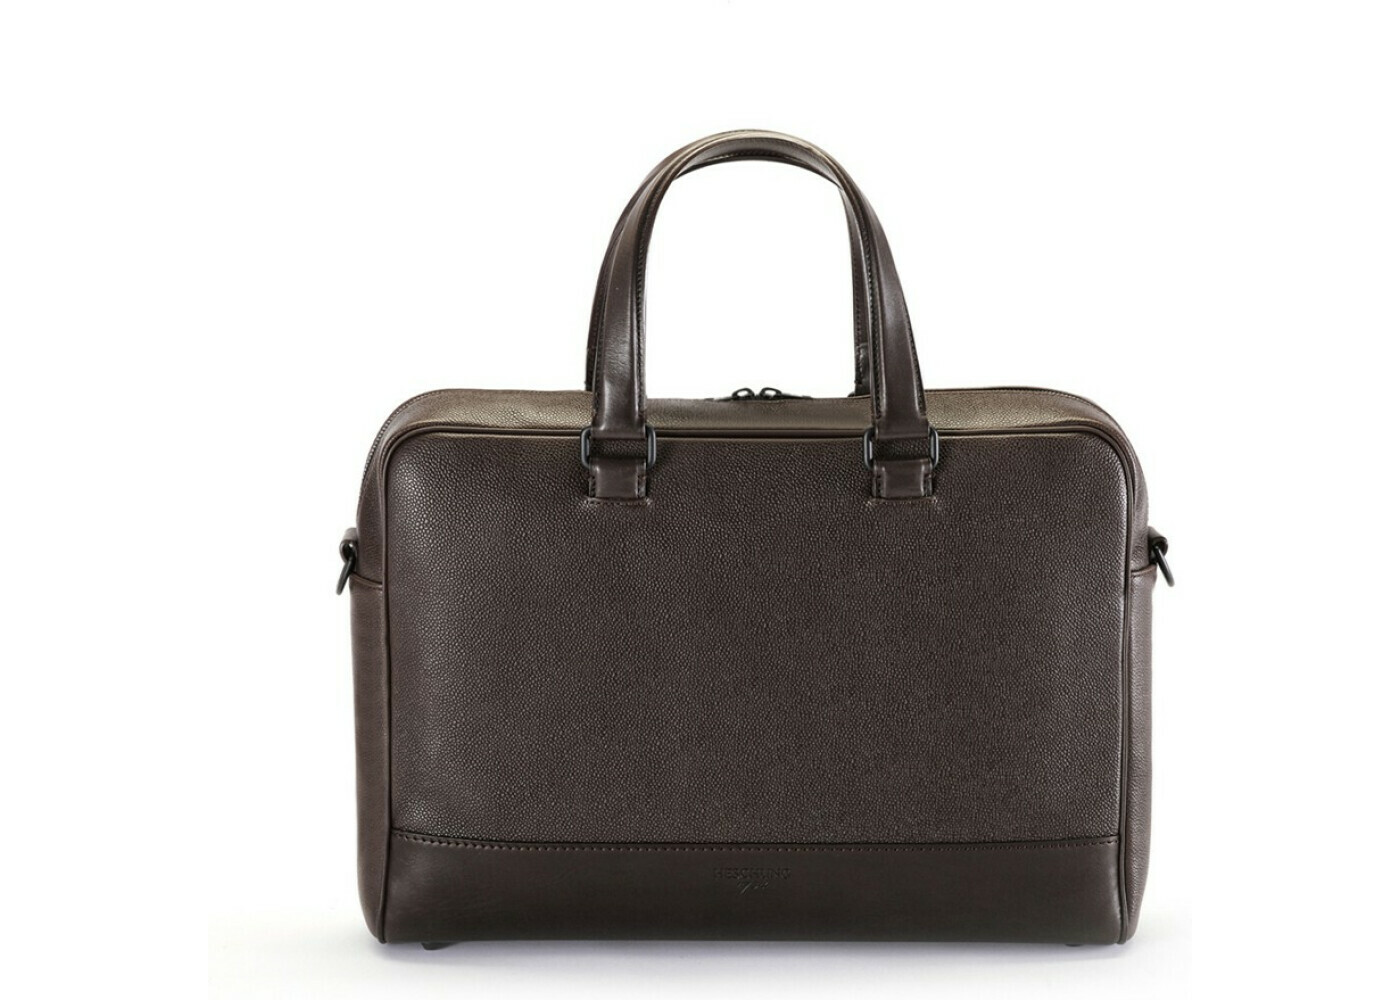 BRIEFCASE Moro Anilcalf/Beluga